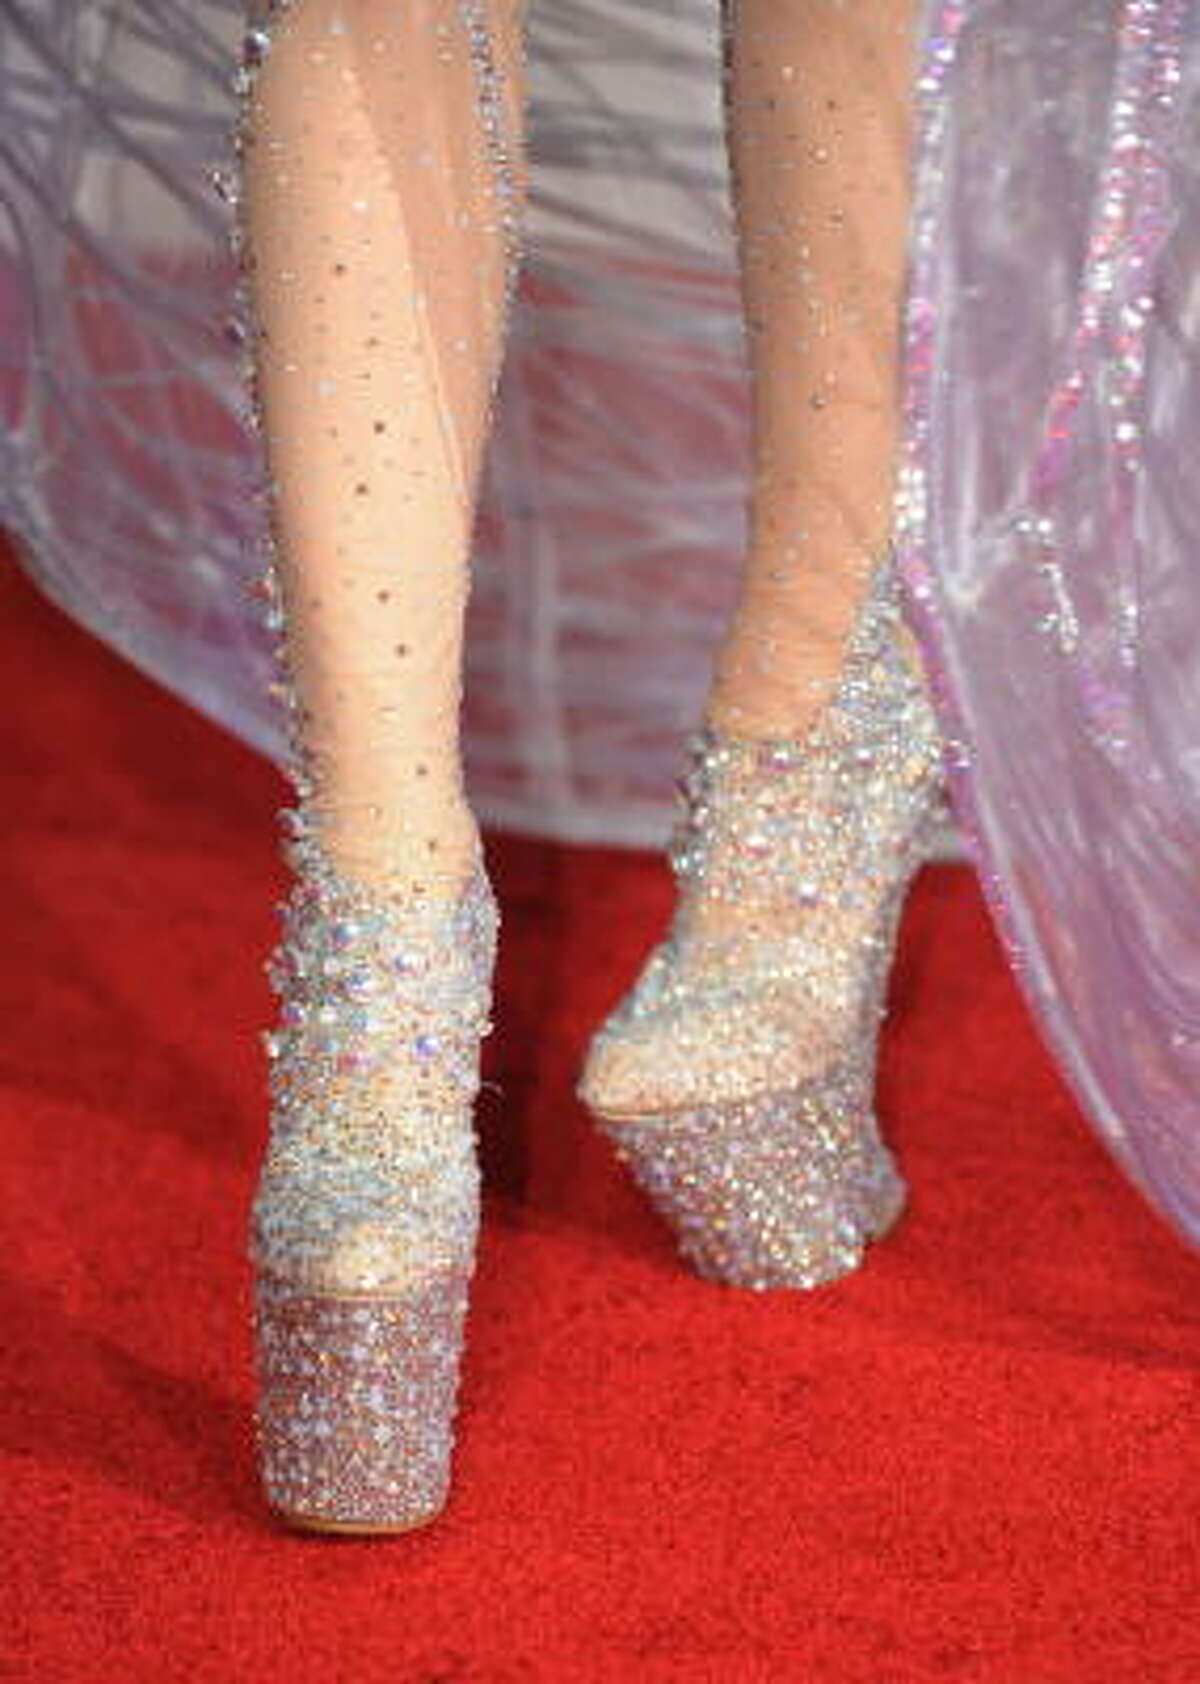 Even her shoes are over the top.